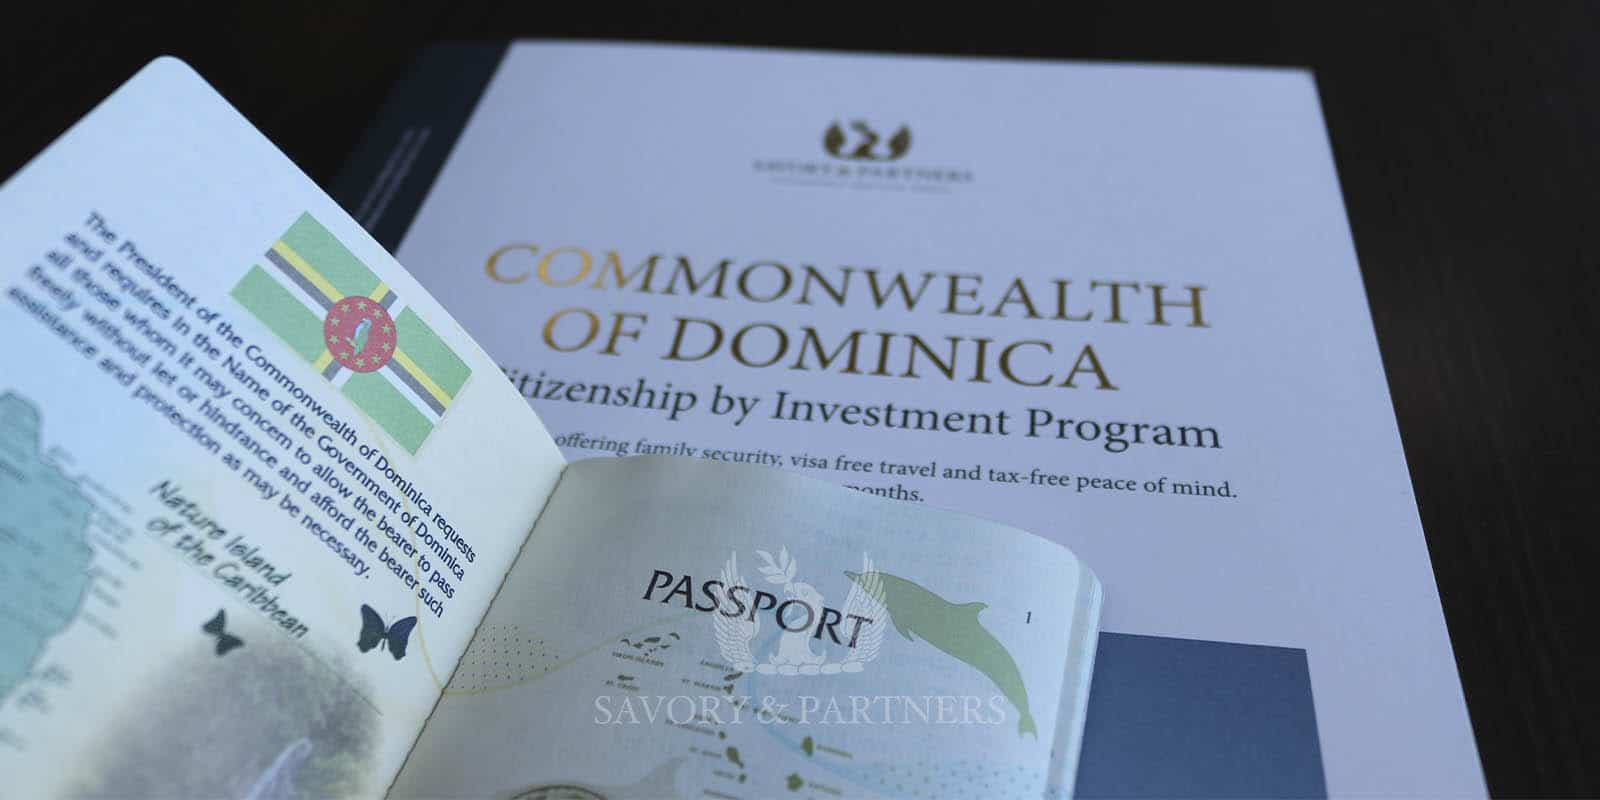 Dominica Citizenship by Investment - Savory & Partners